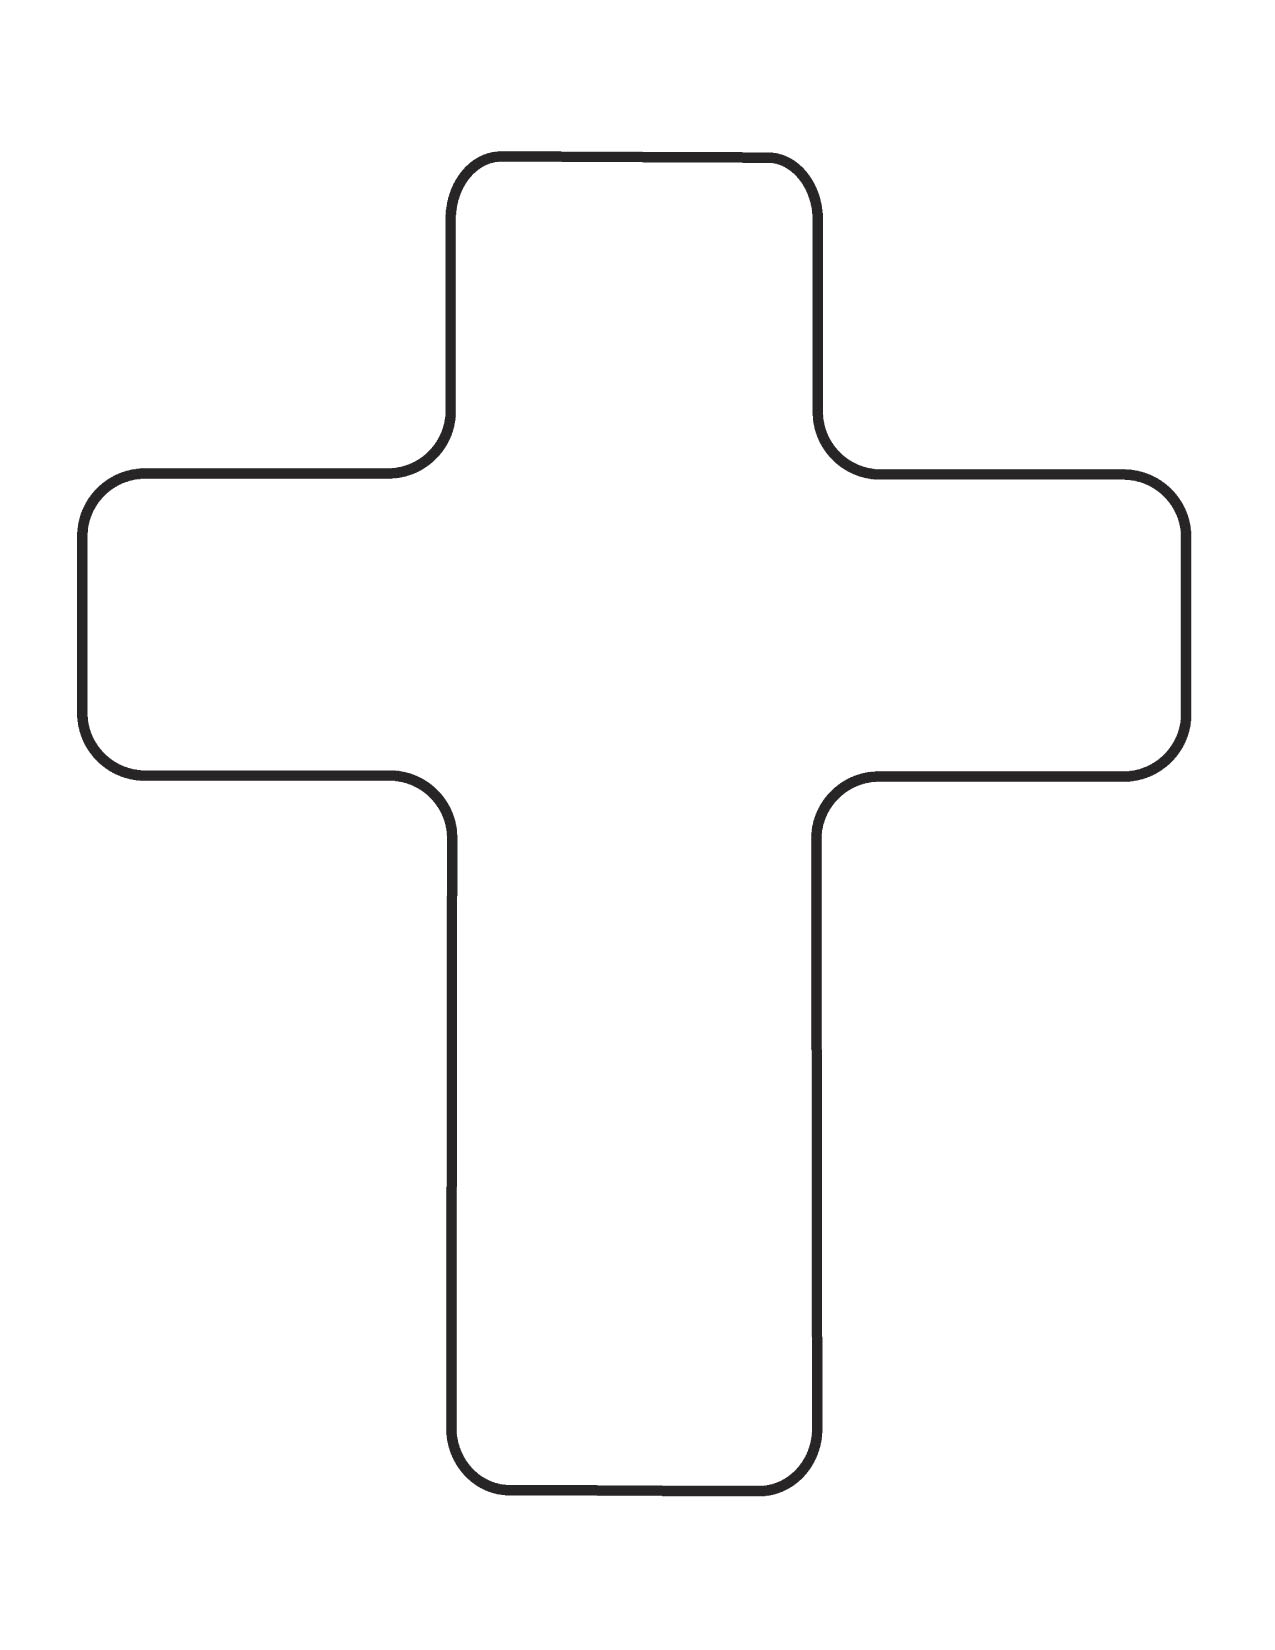 Catholic Cross Clip Art | Clipart Panda - Free Clipart Images